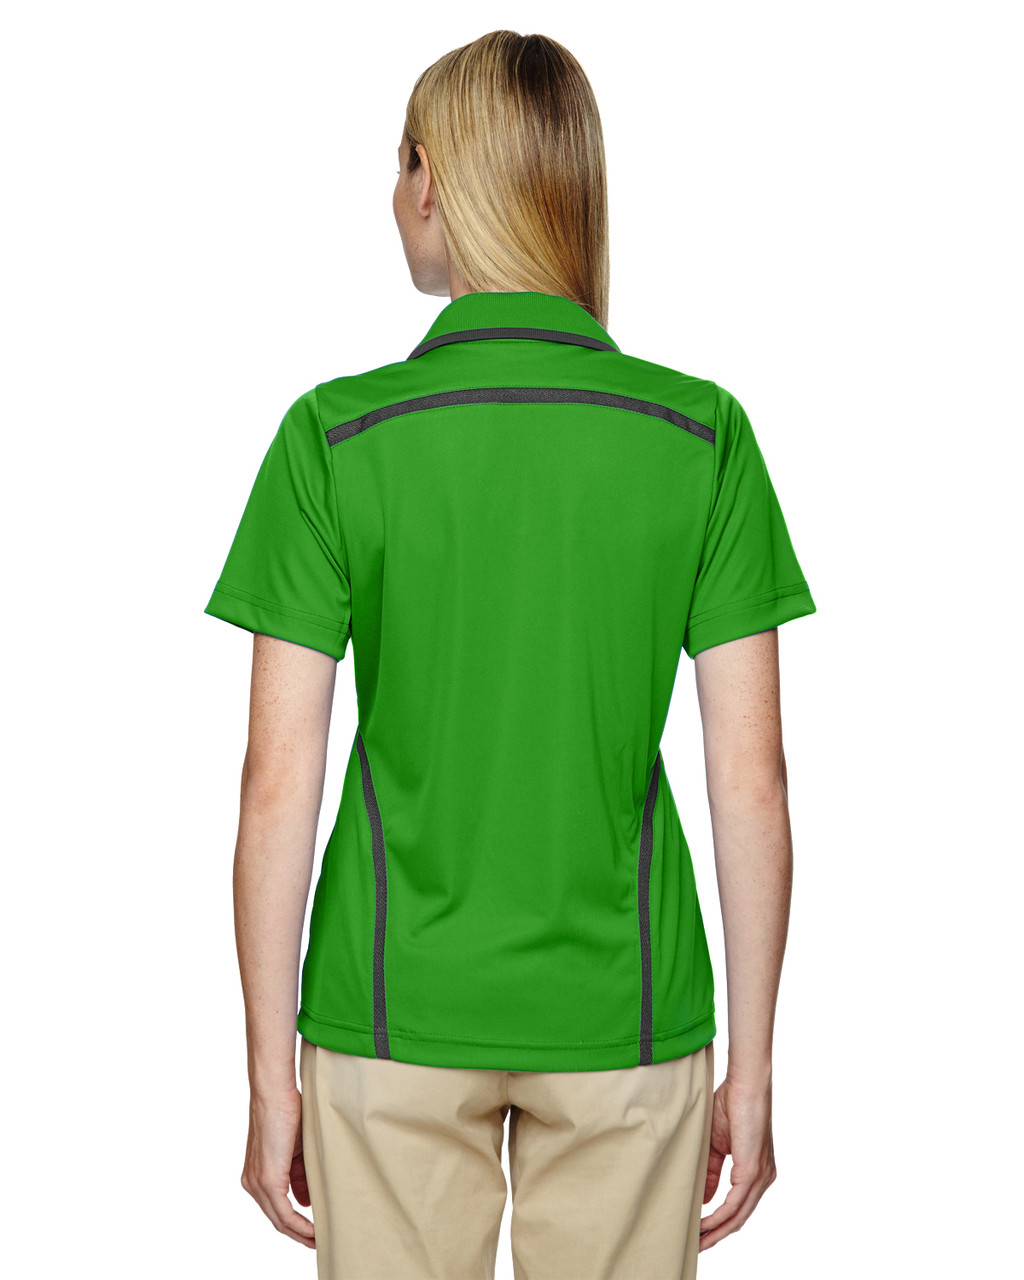 Valley Green - Back, 75118 Ash City - Extreme Eperformance Propel Interlock Polo Shirt with Contrast Tape | BlankClothing.ca